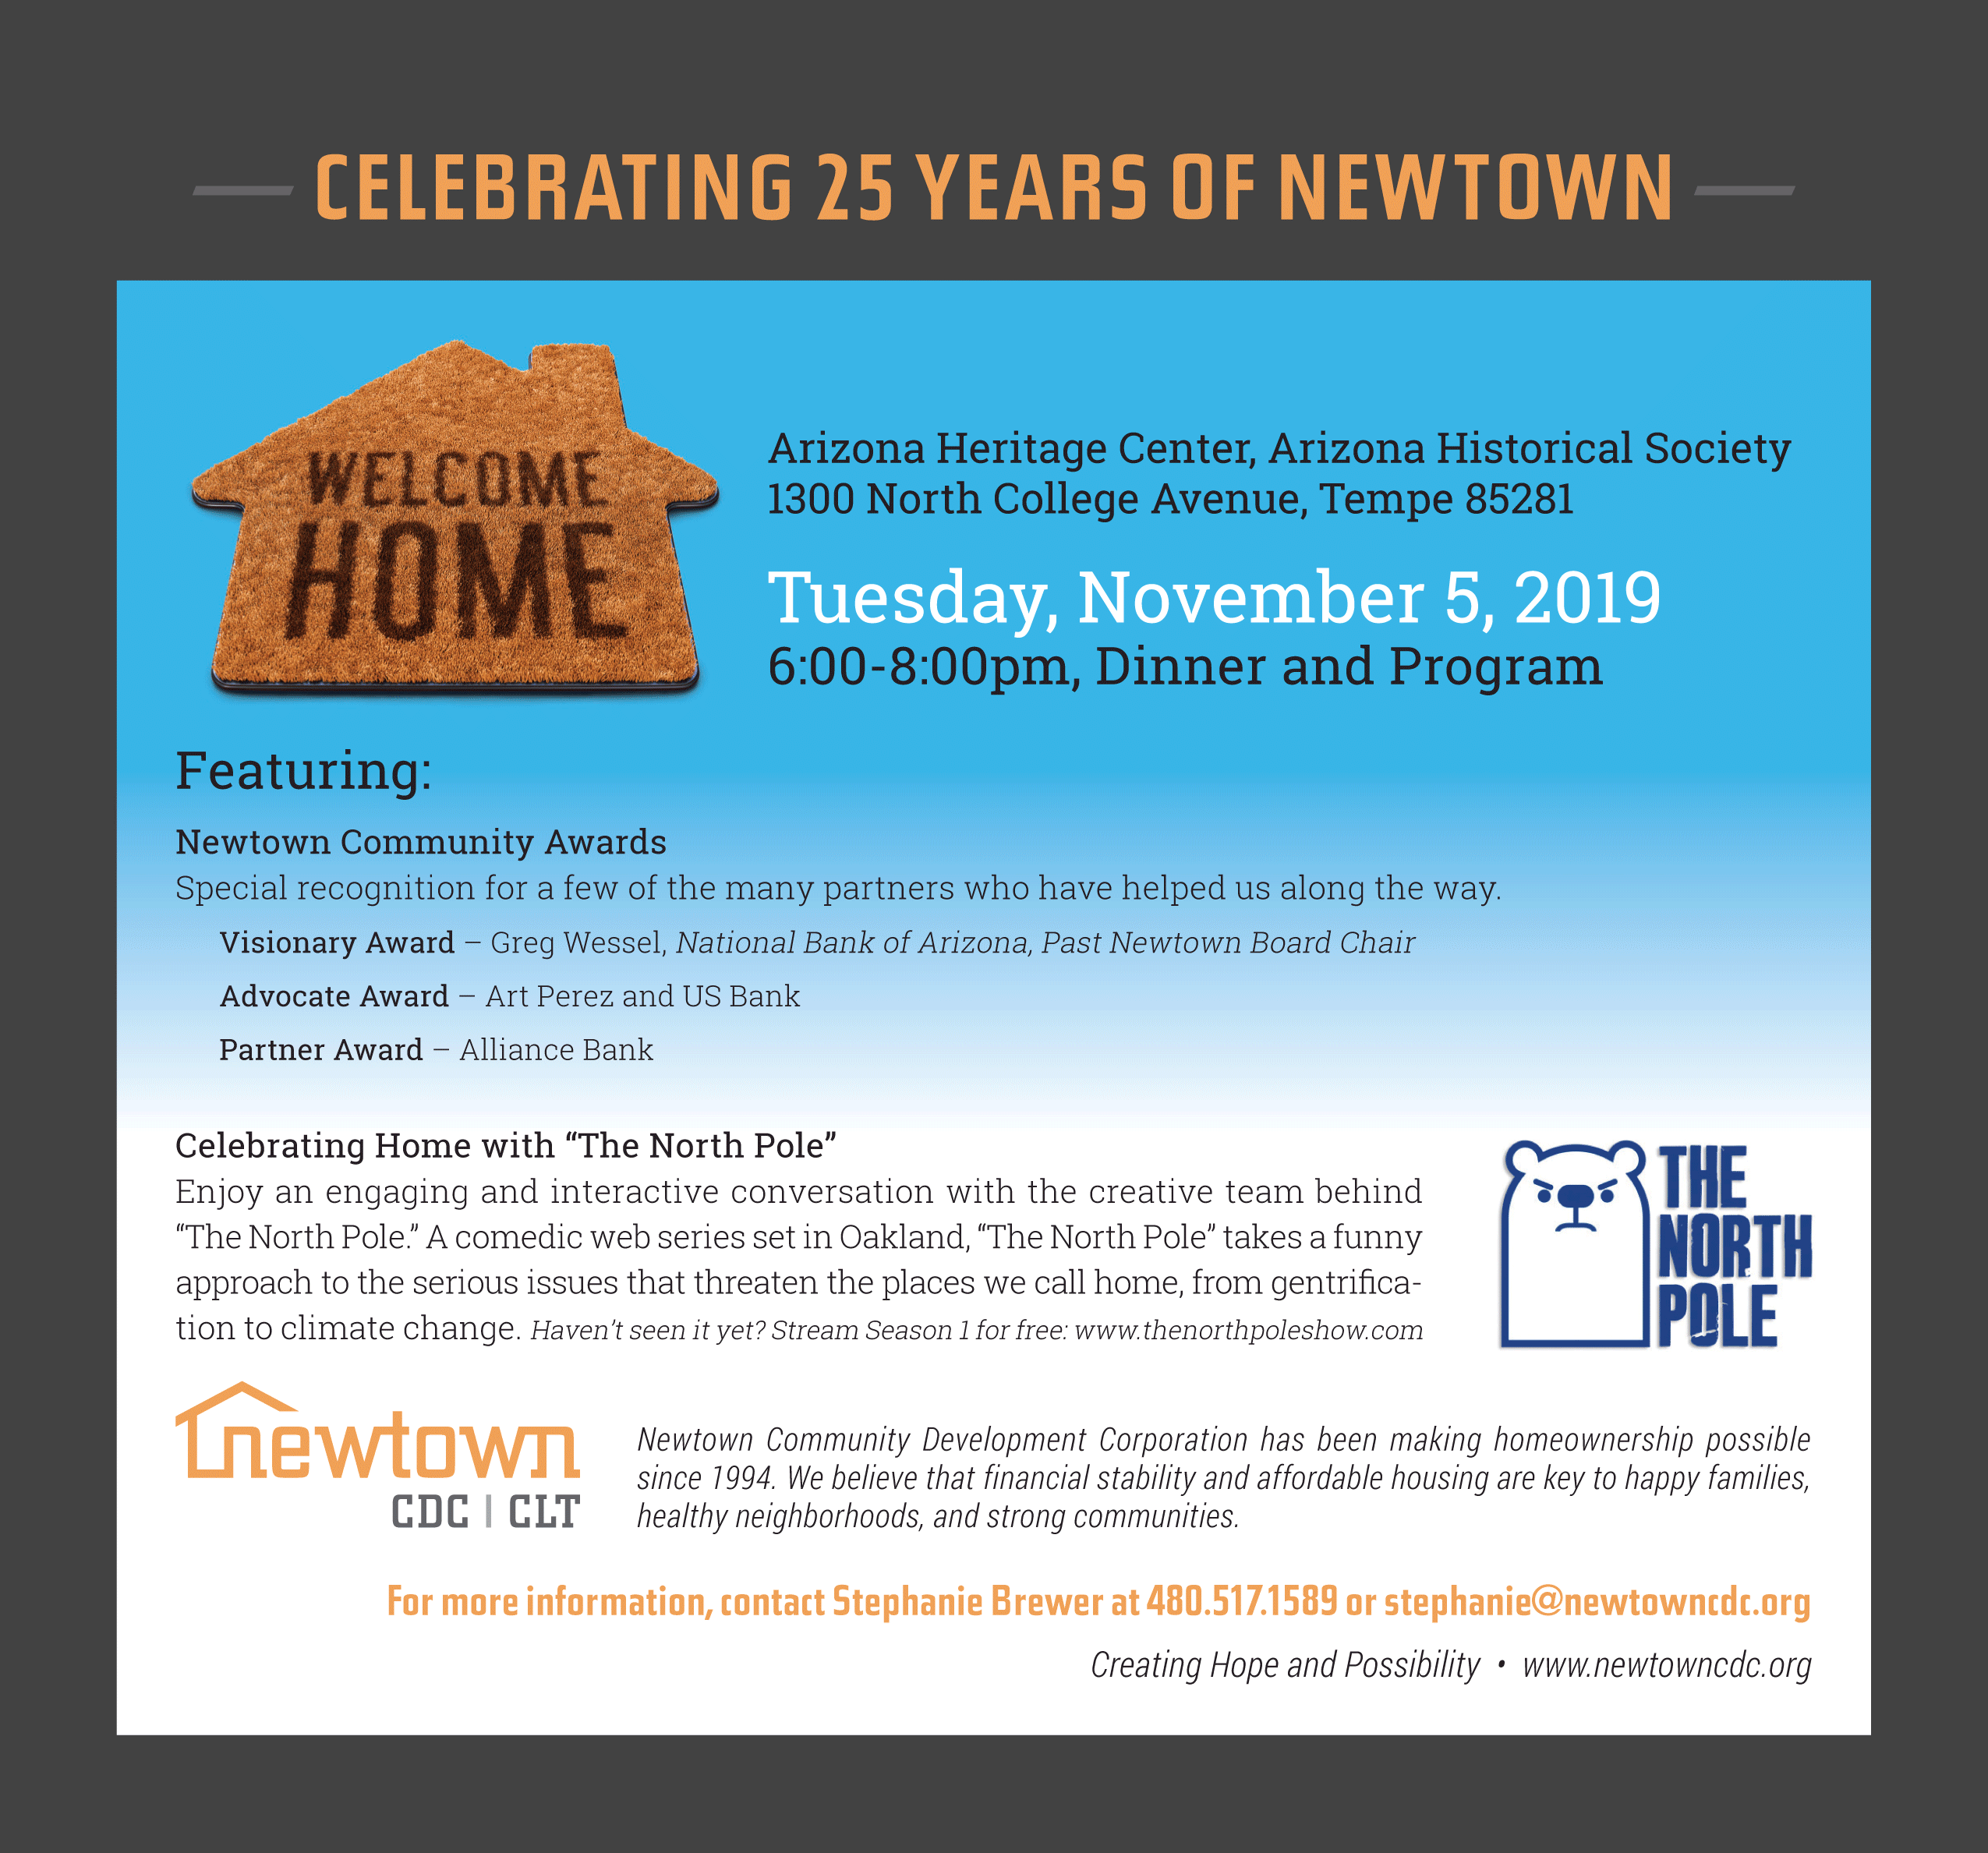 Celebrating 25 Years of Newtown